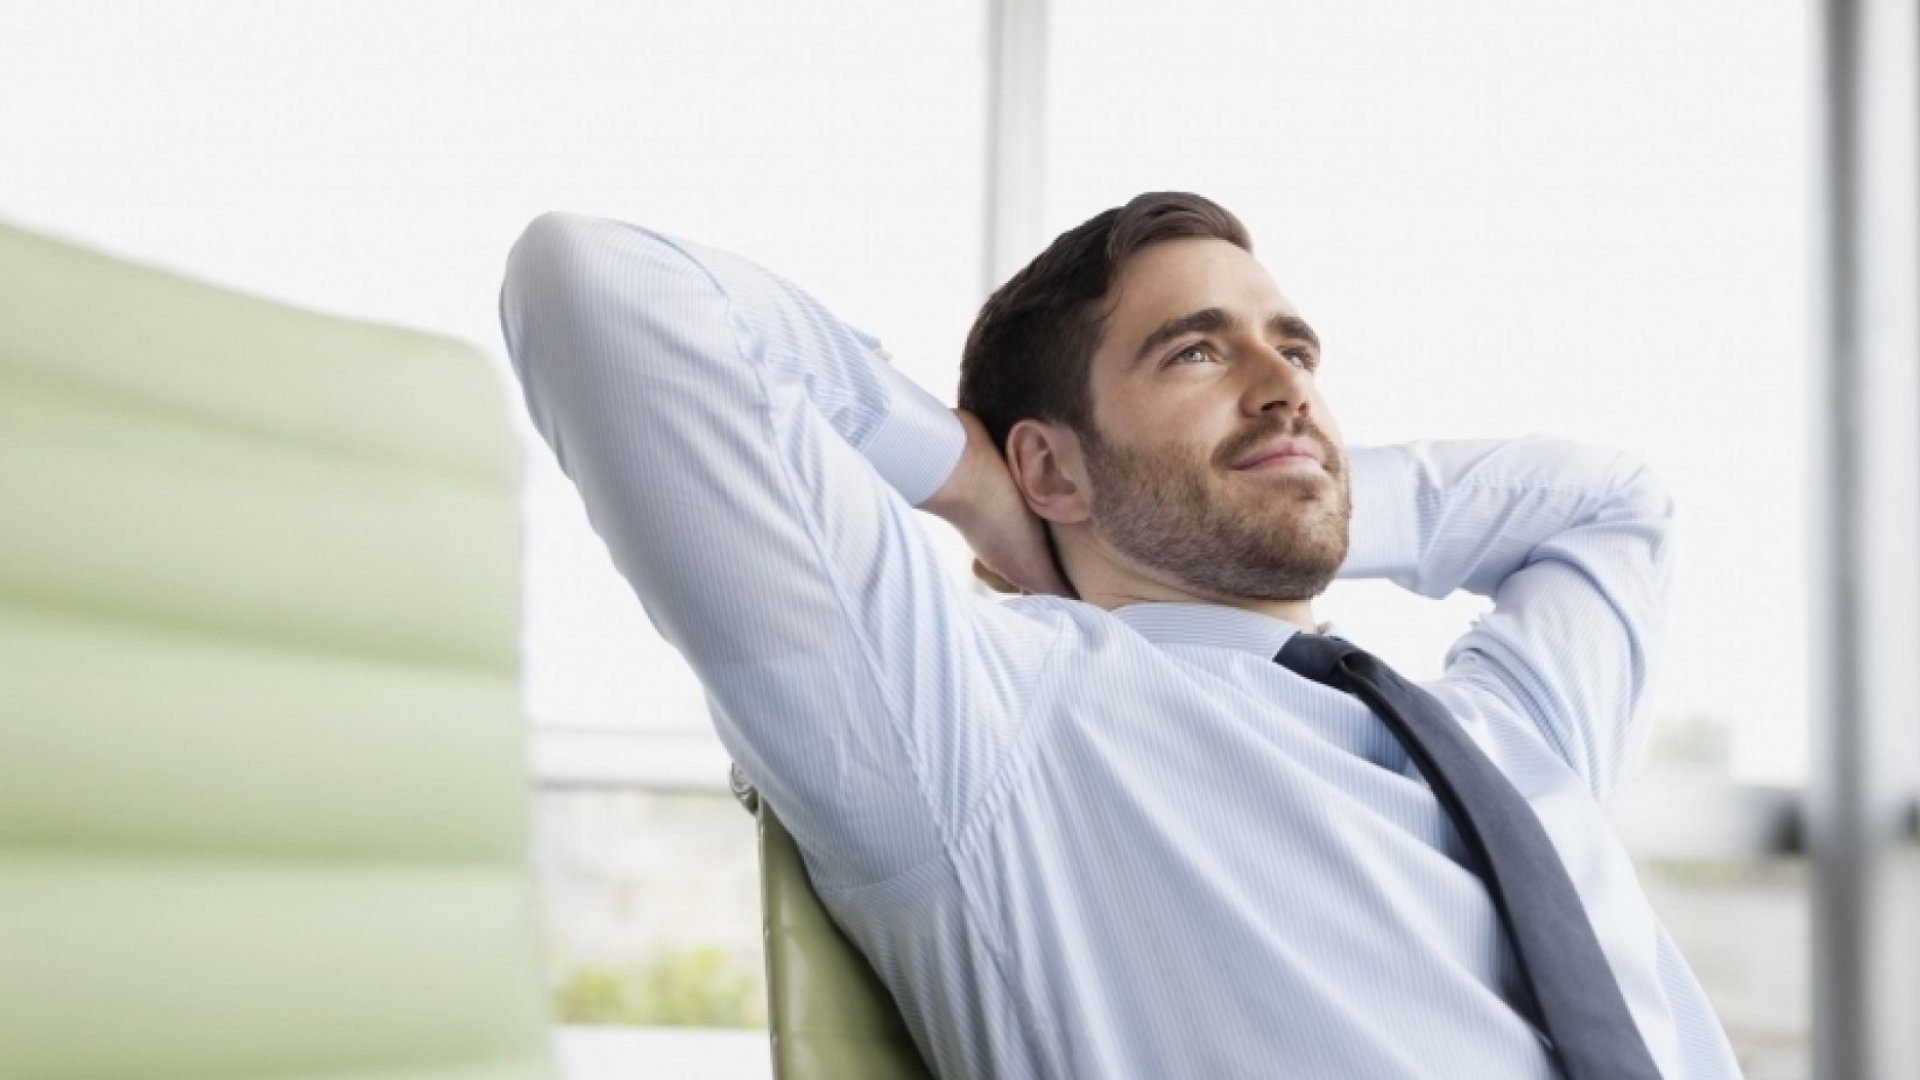 Want to Accomplish More? Try Some Rest and Relaxation